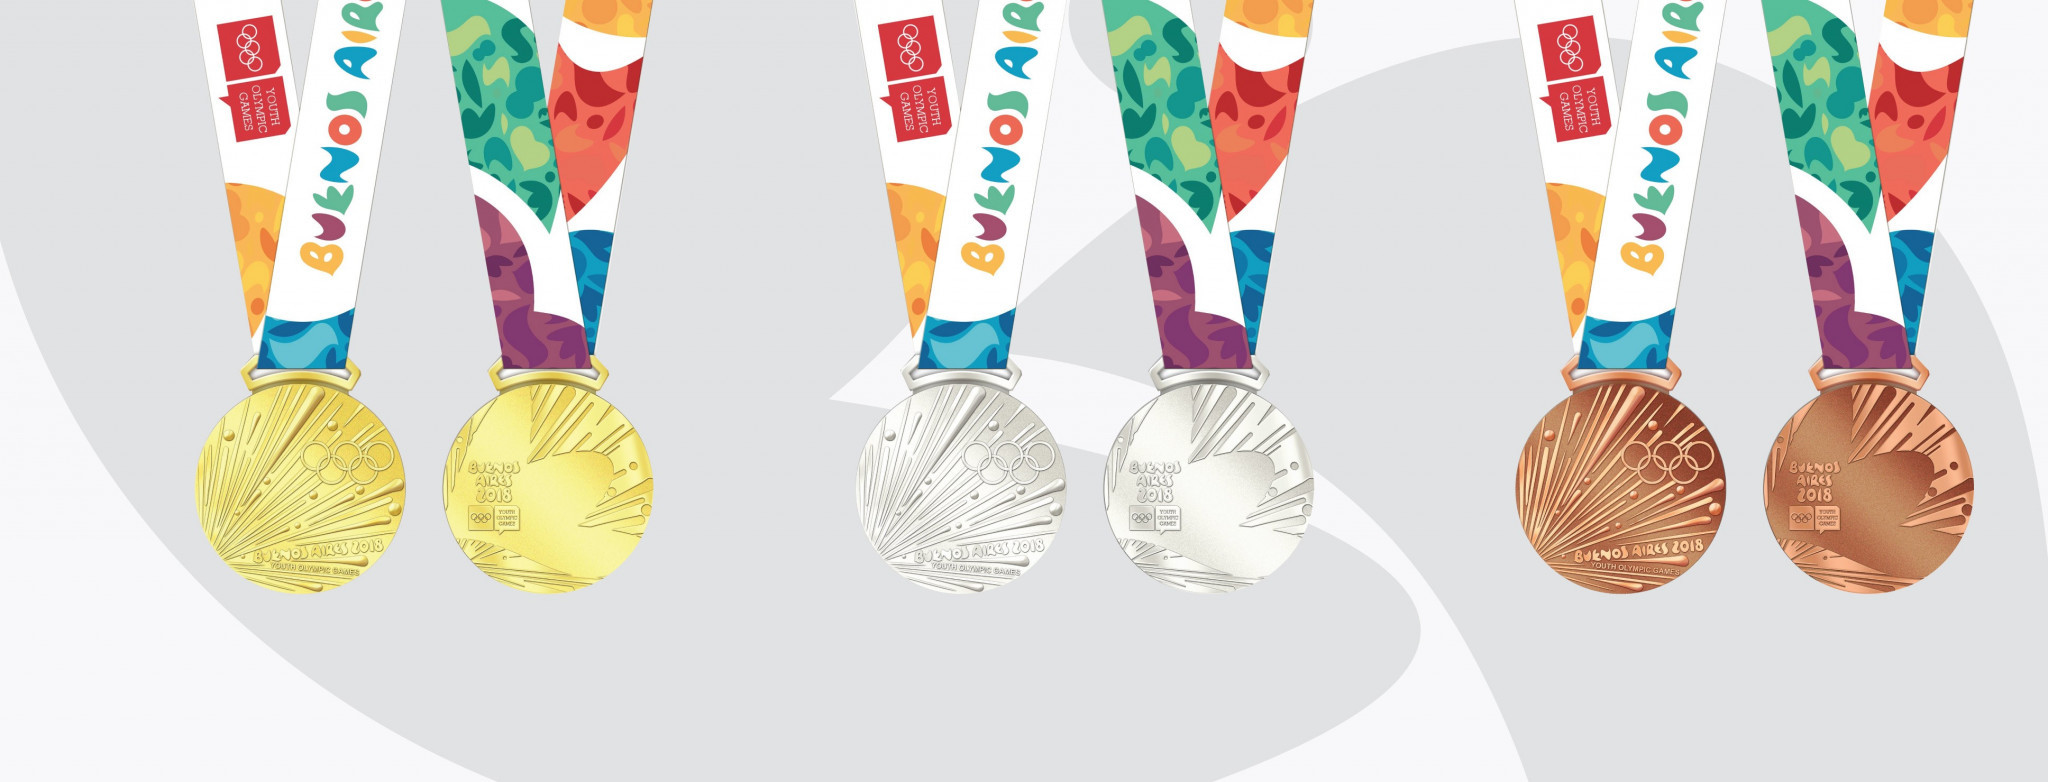 Design of medals to be awarded at Buenos Aires 2018 completed